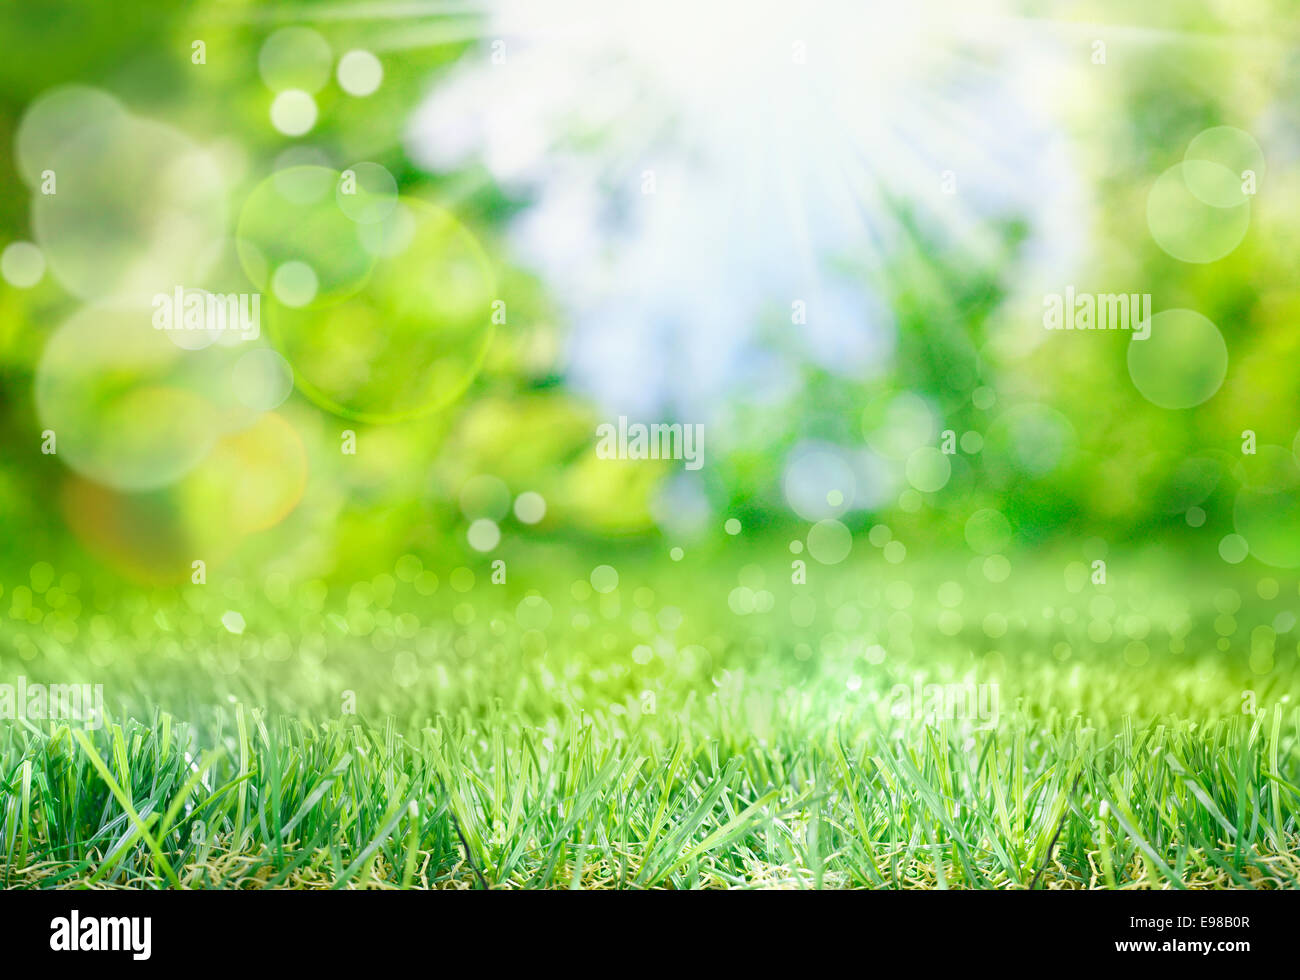 Soft defocused spring background with a sunburst and bokeh over lush green grass - Stock Image